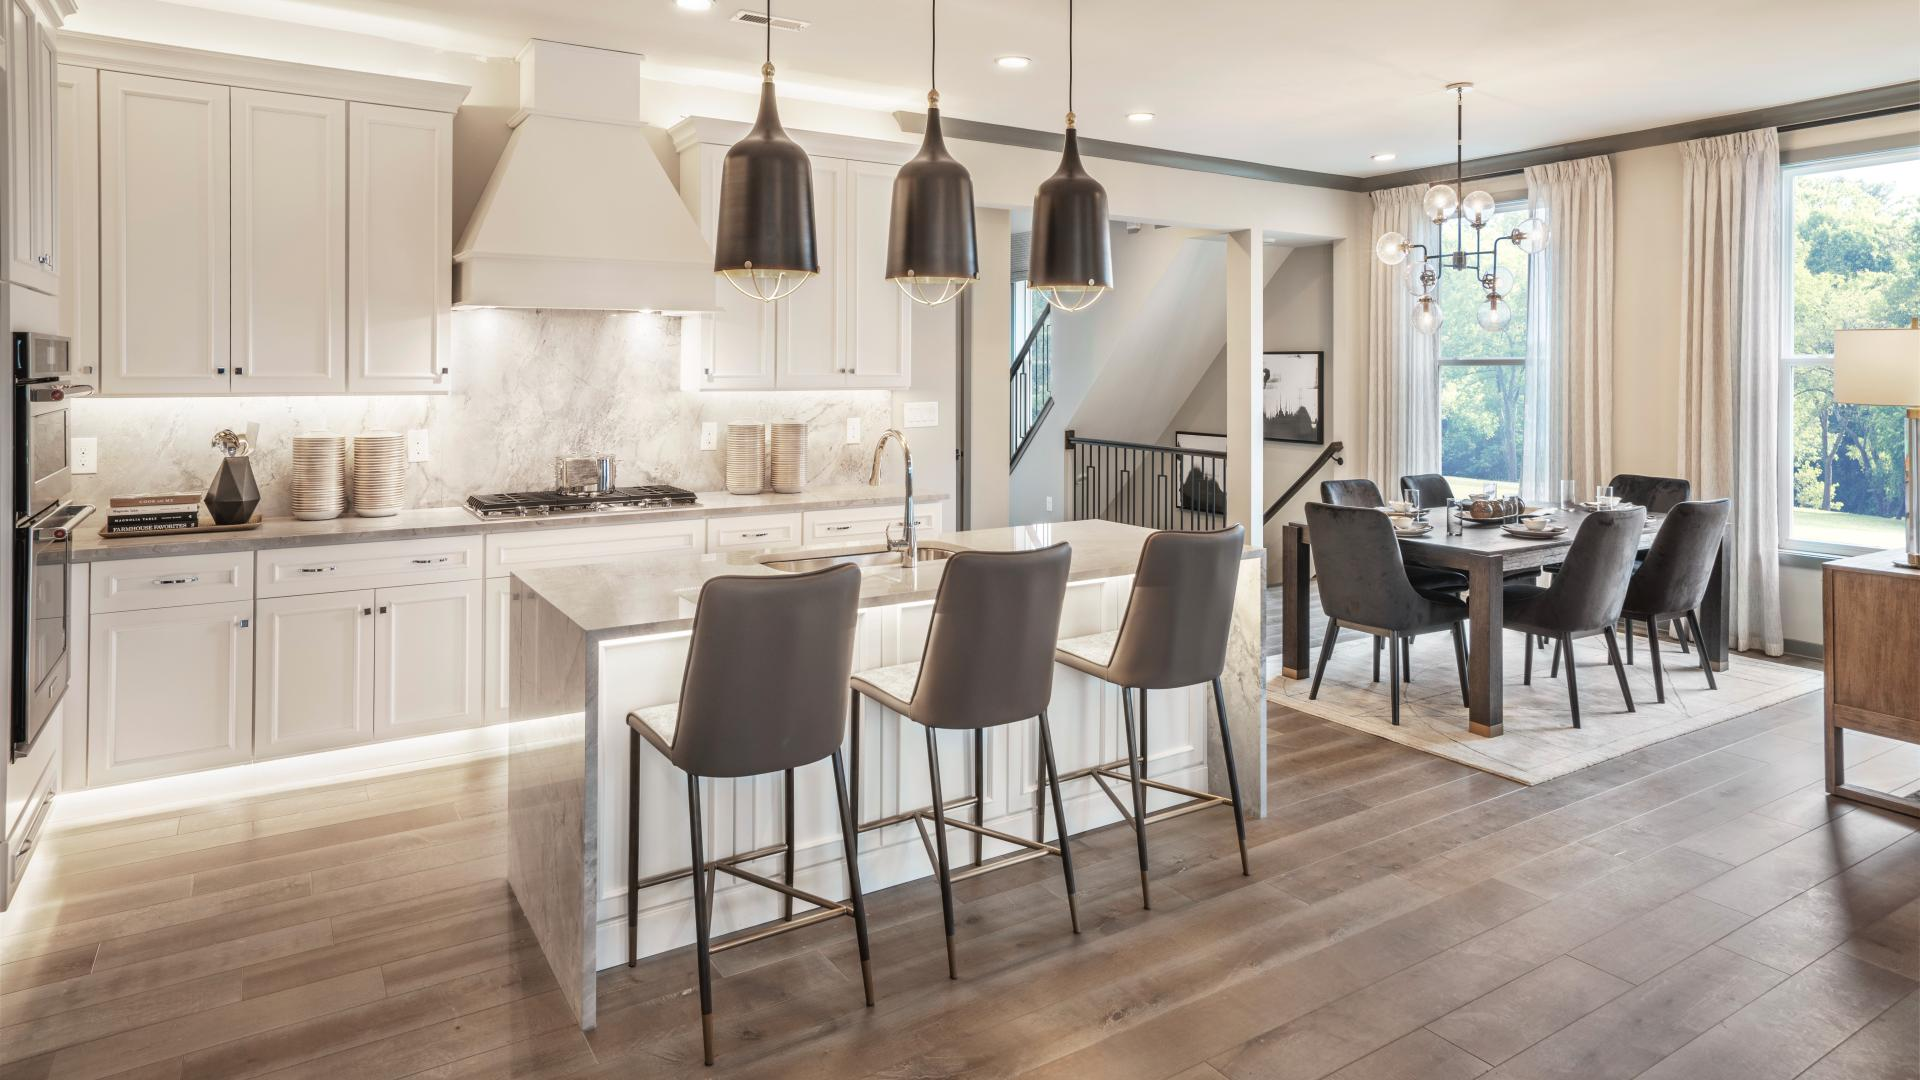 Casual dining area adjacent to kitchen